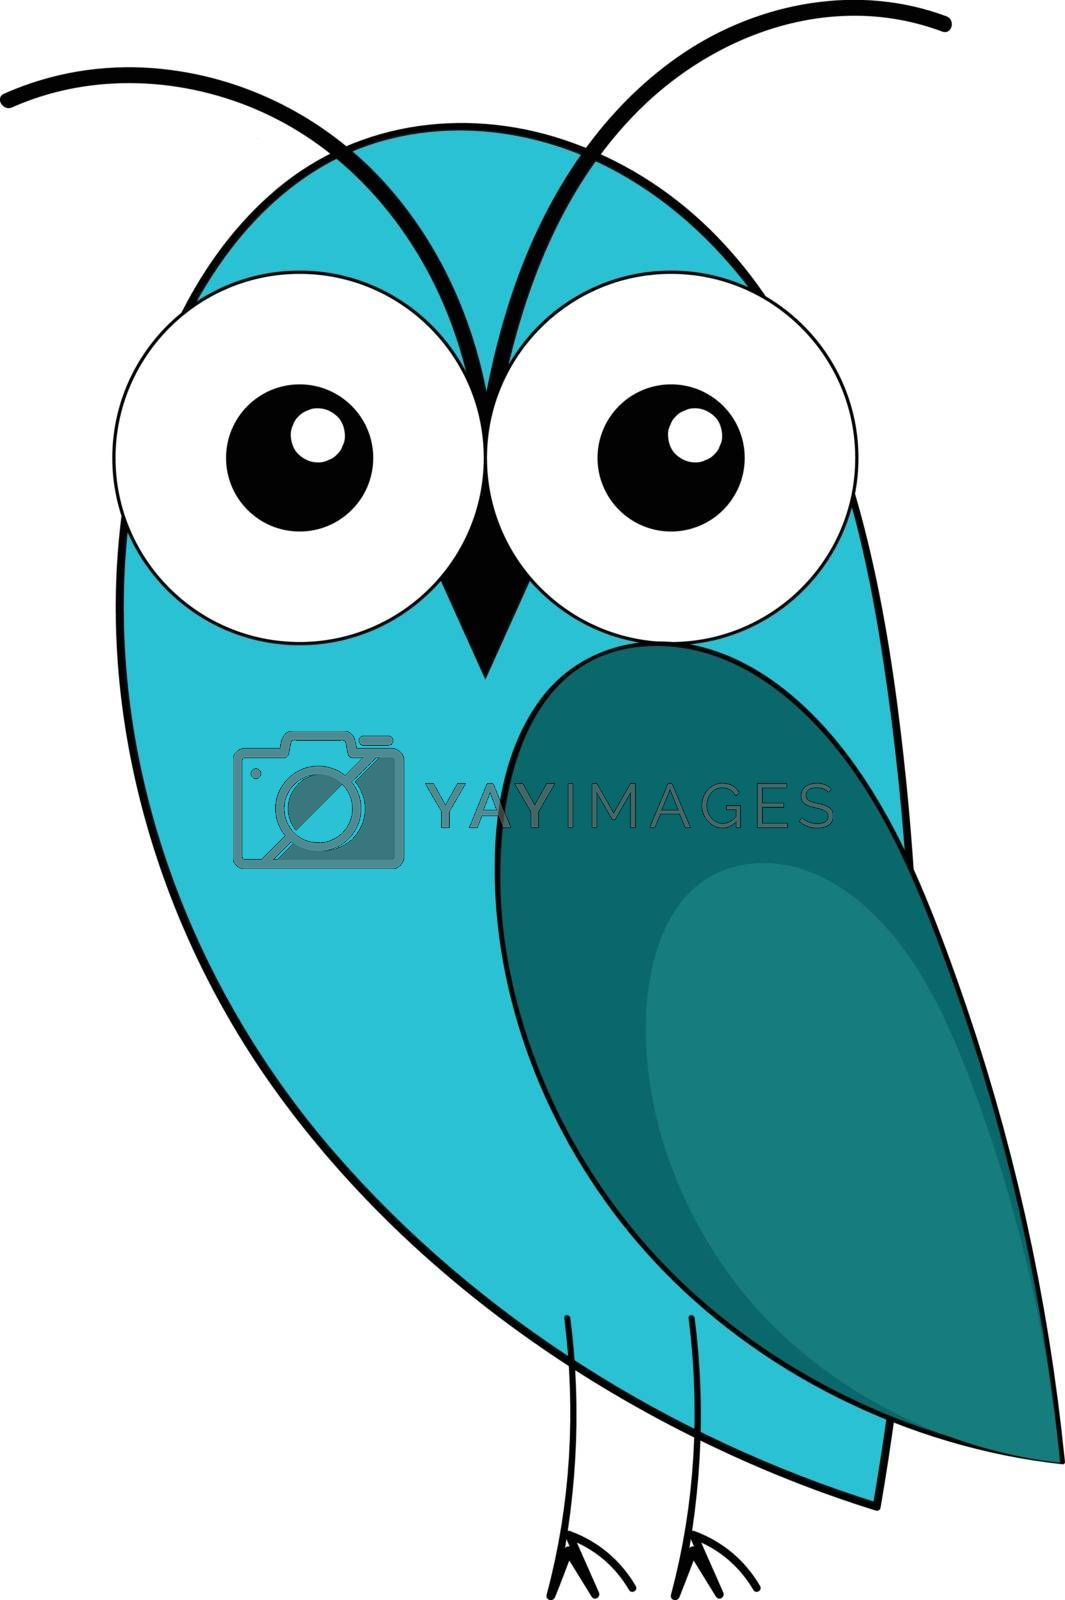 Painting of a blue owl with two swollen eyes  two black horns  stick-like feet  expresses sadness while standing  vector  color drawing or illustration